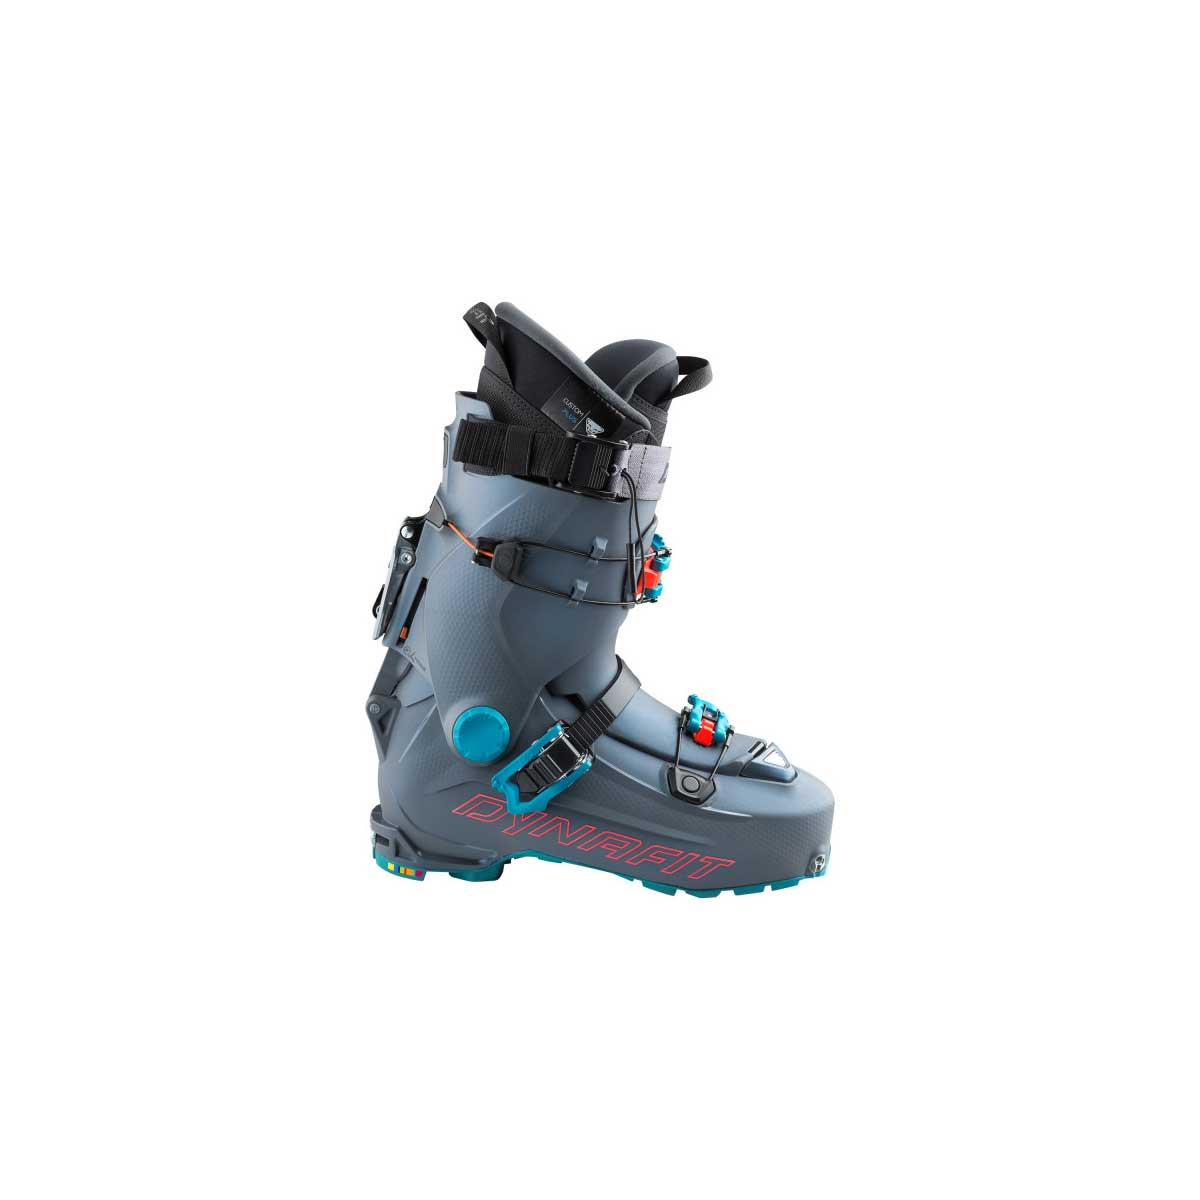 Dynafit Women's Hoji Pro Tour Boot in Asphalt